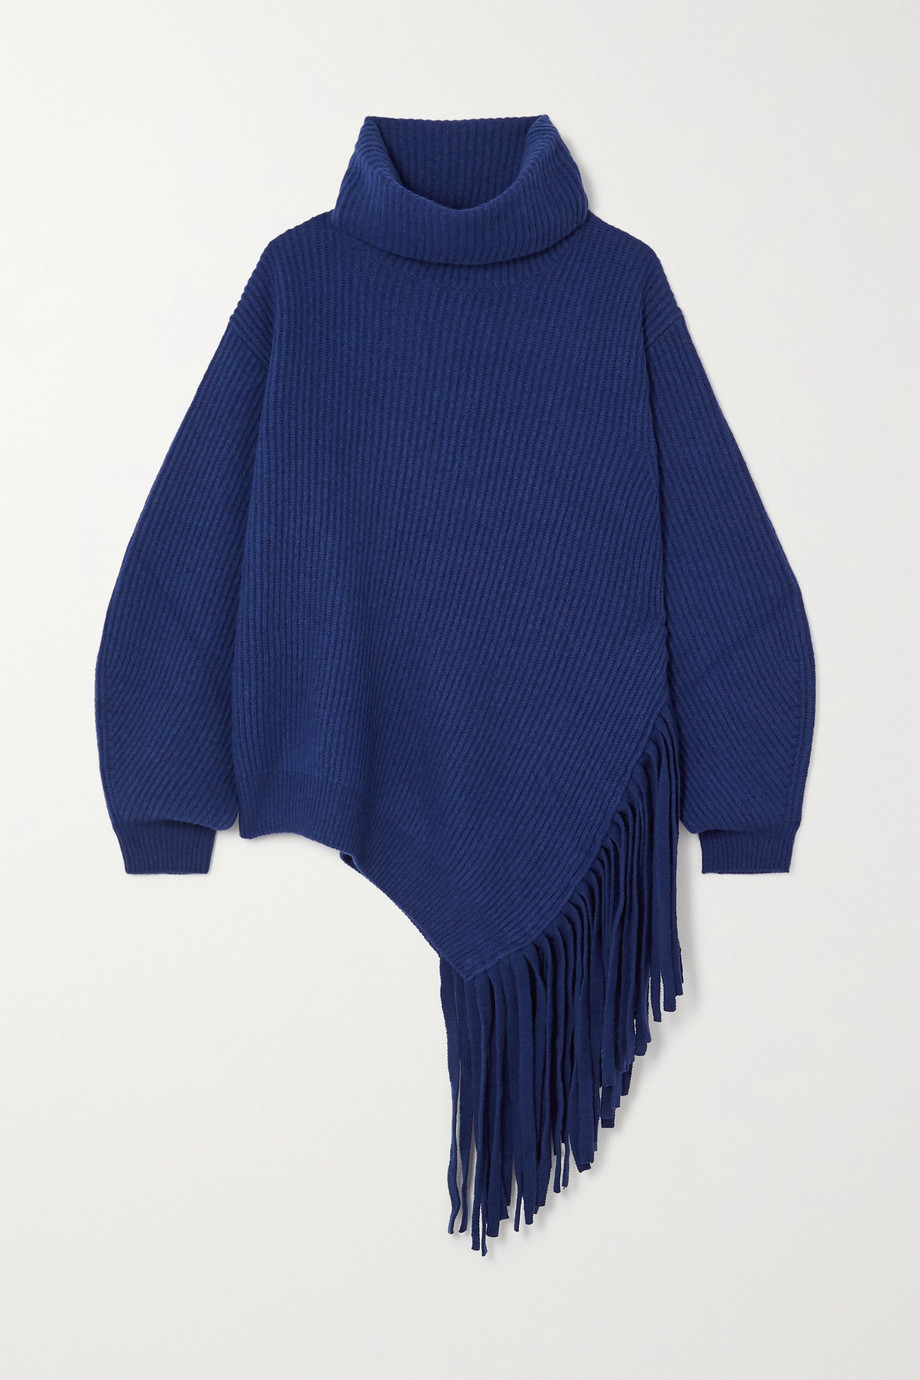 Stella McCartney Asymmetric fringed ribbed cashmere and wool-blend sweater